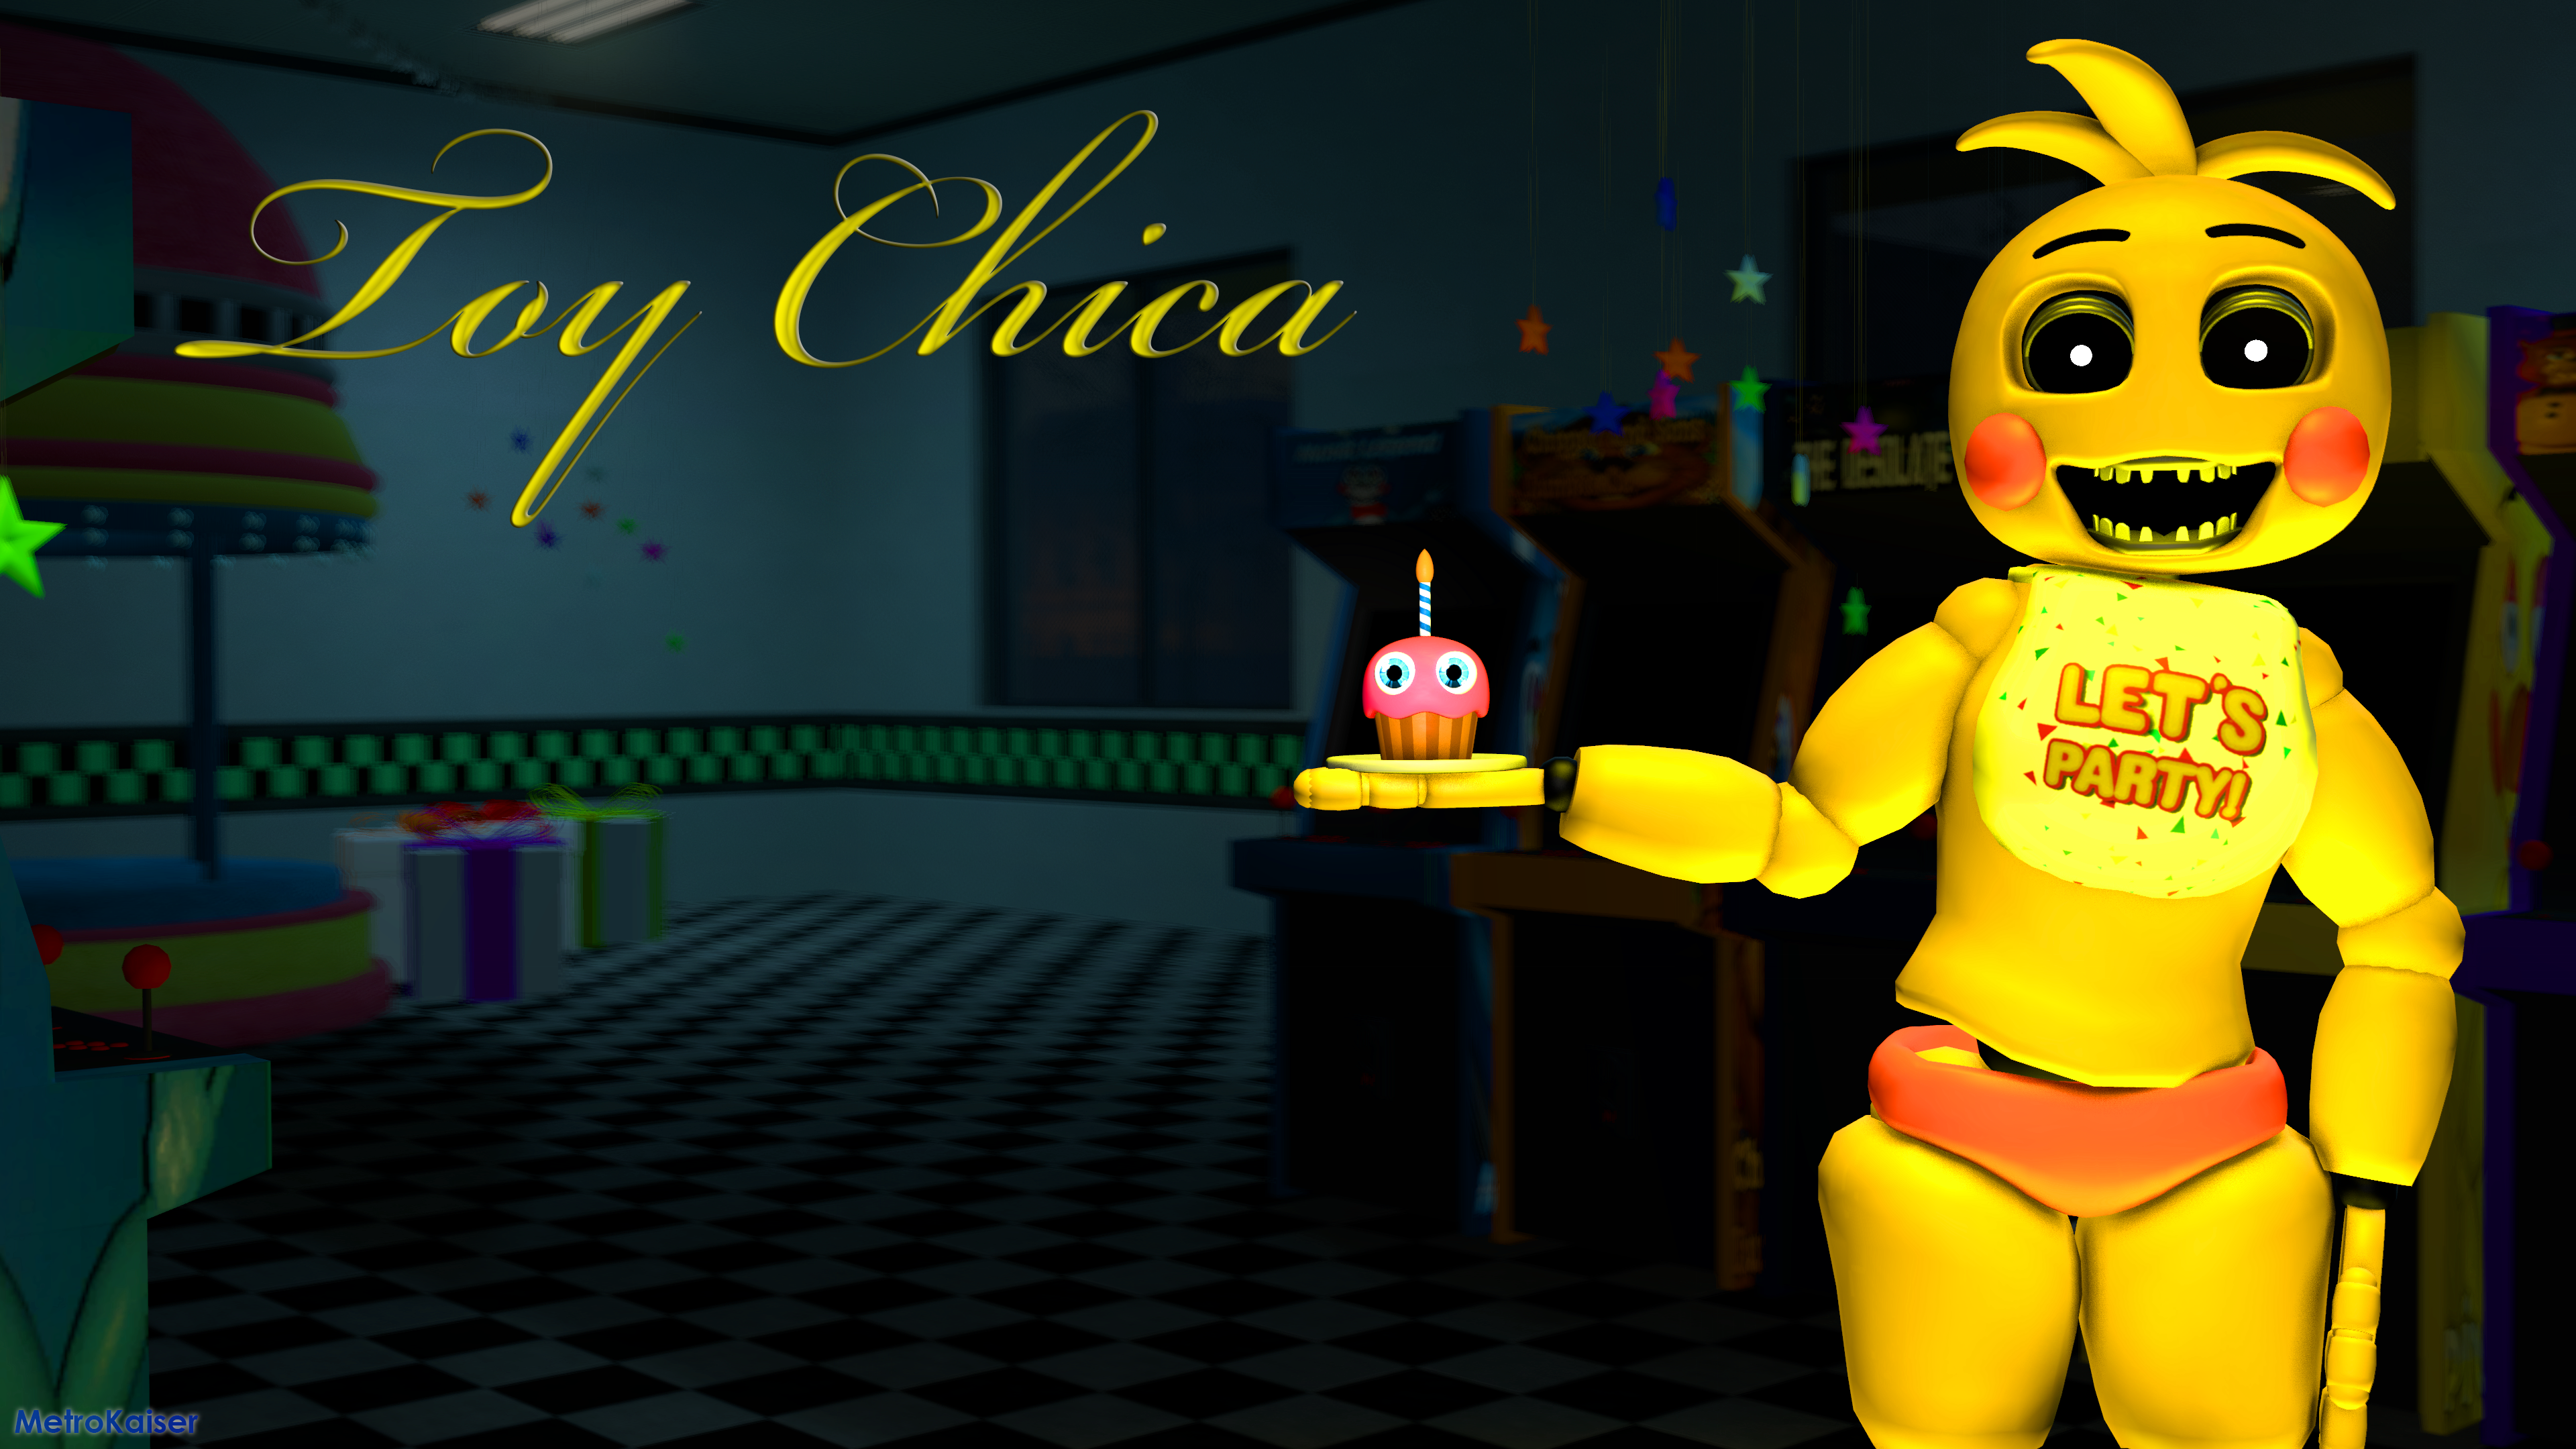 art toy chica wallpaper - photo #11